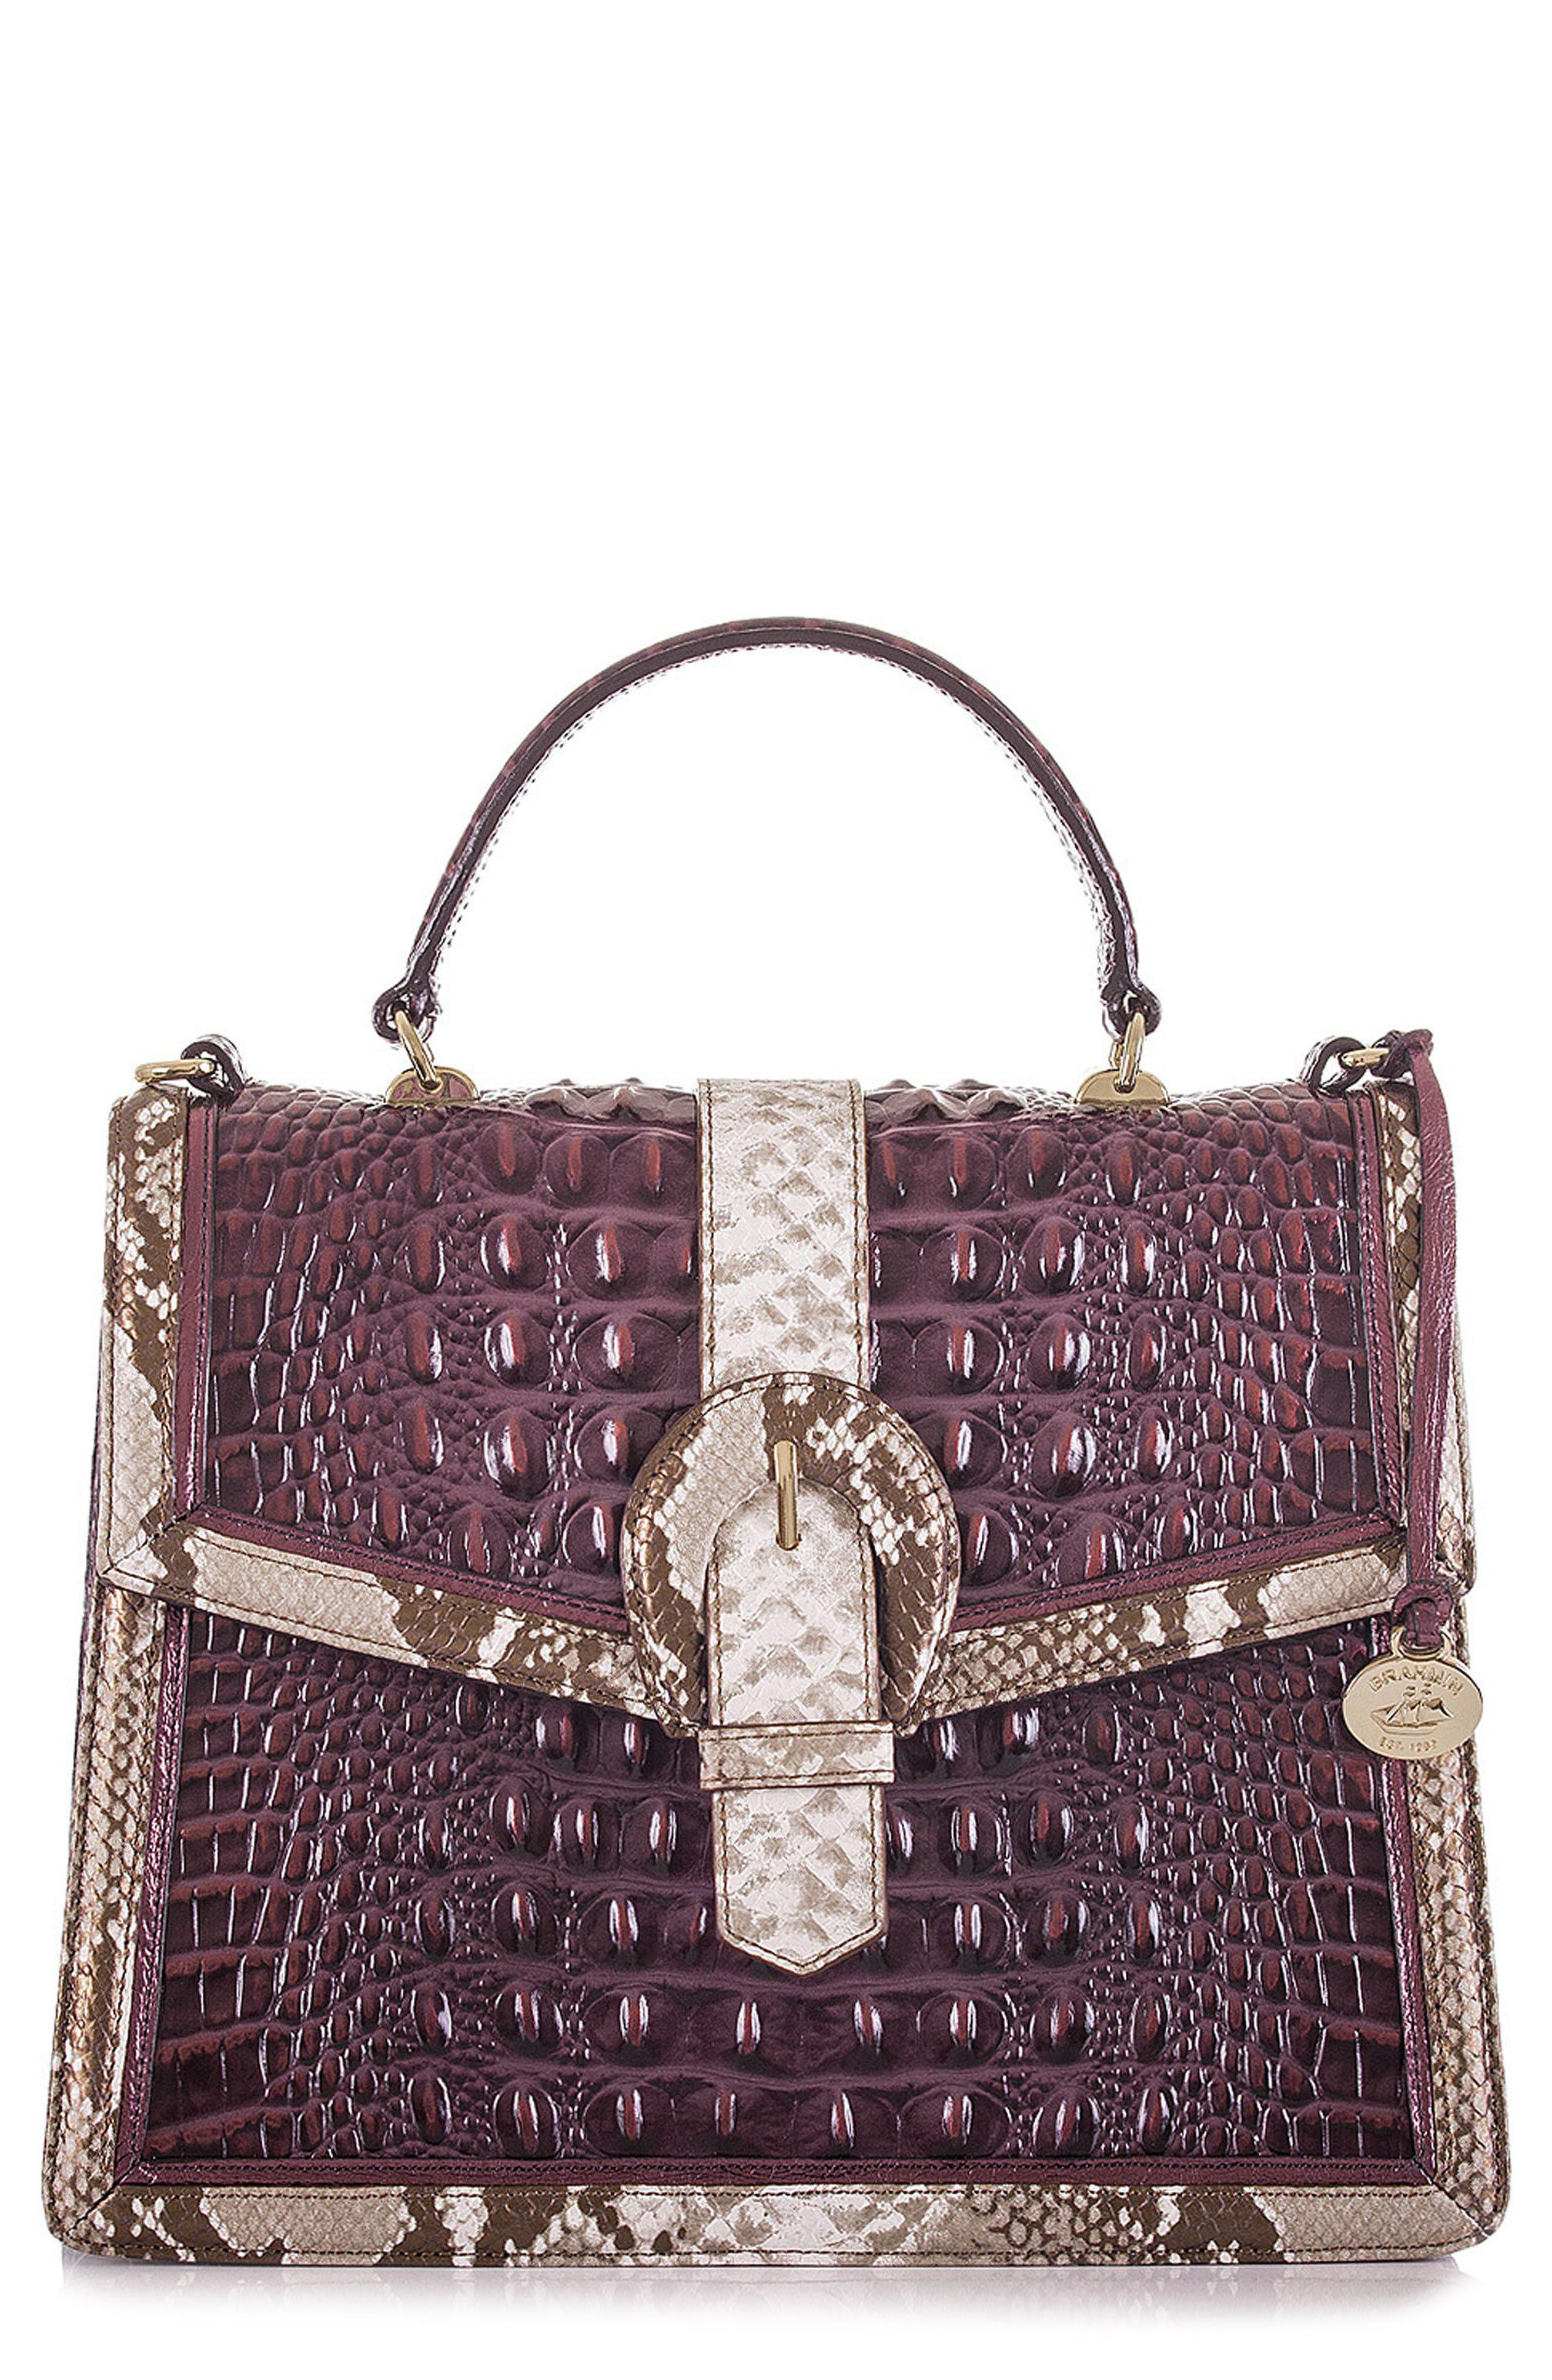 Gabriella Croc-Embossed Leather Satchel,                         Main,                         color, 504